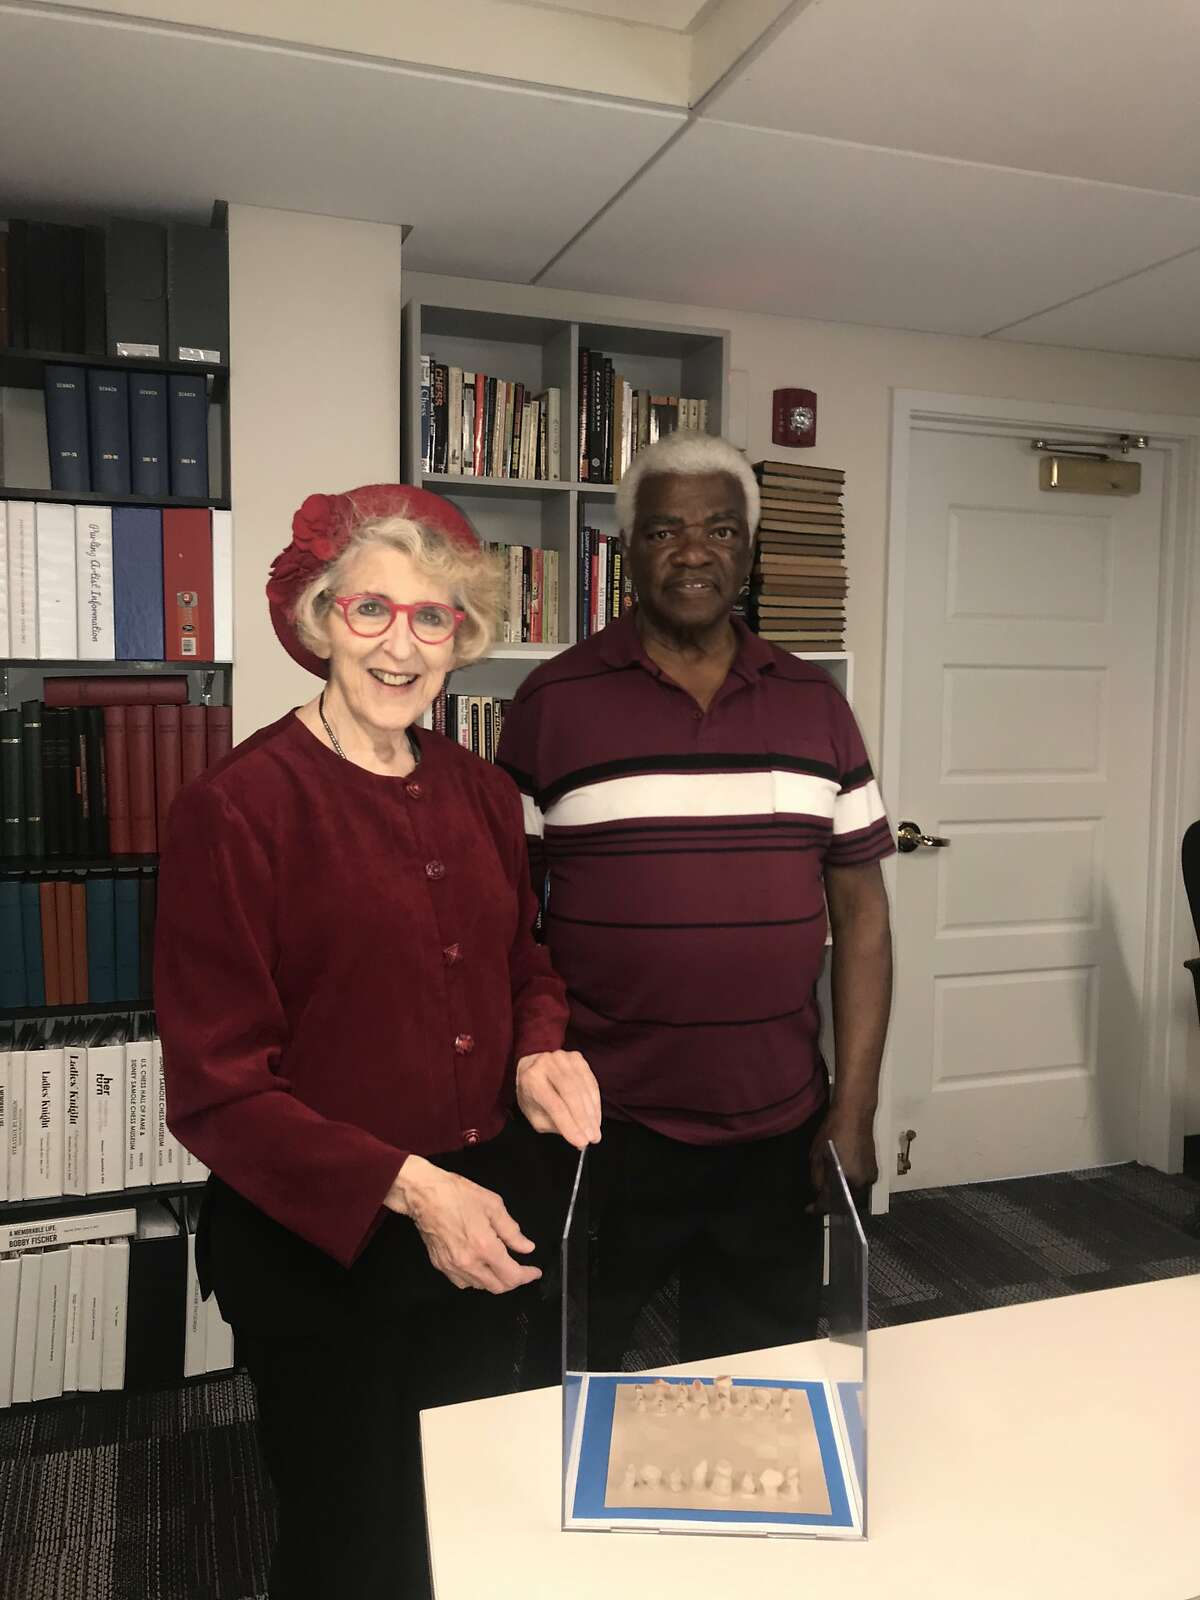 Carol Ruth Silver and Claude Liggins, both Freedom riders